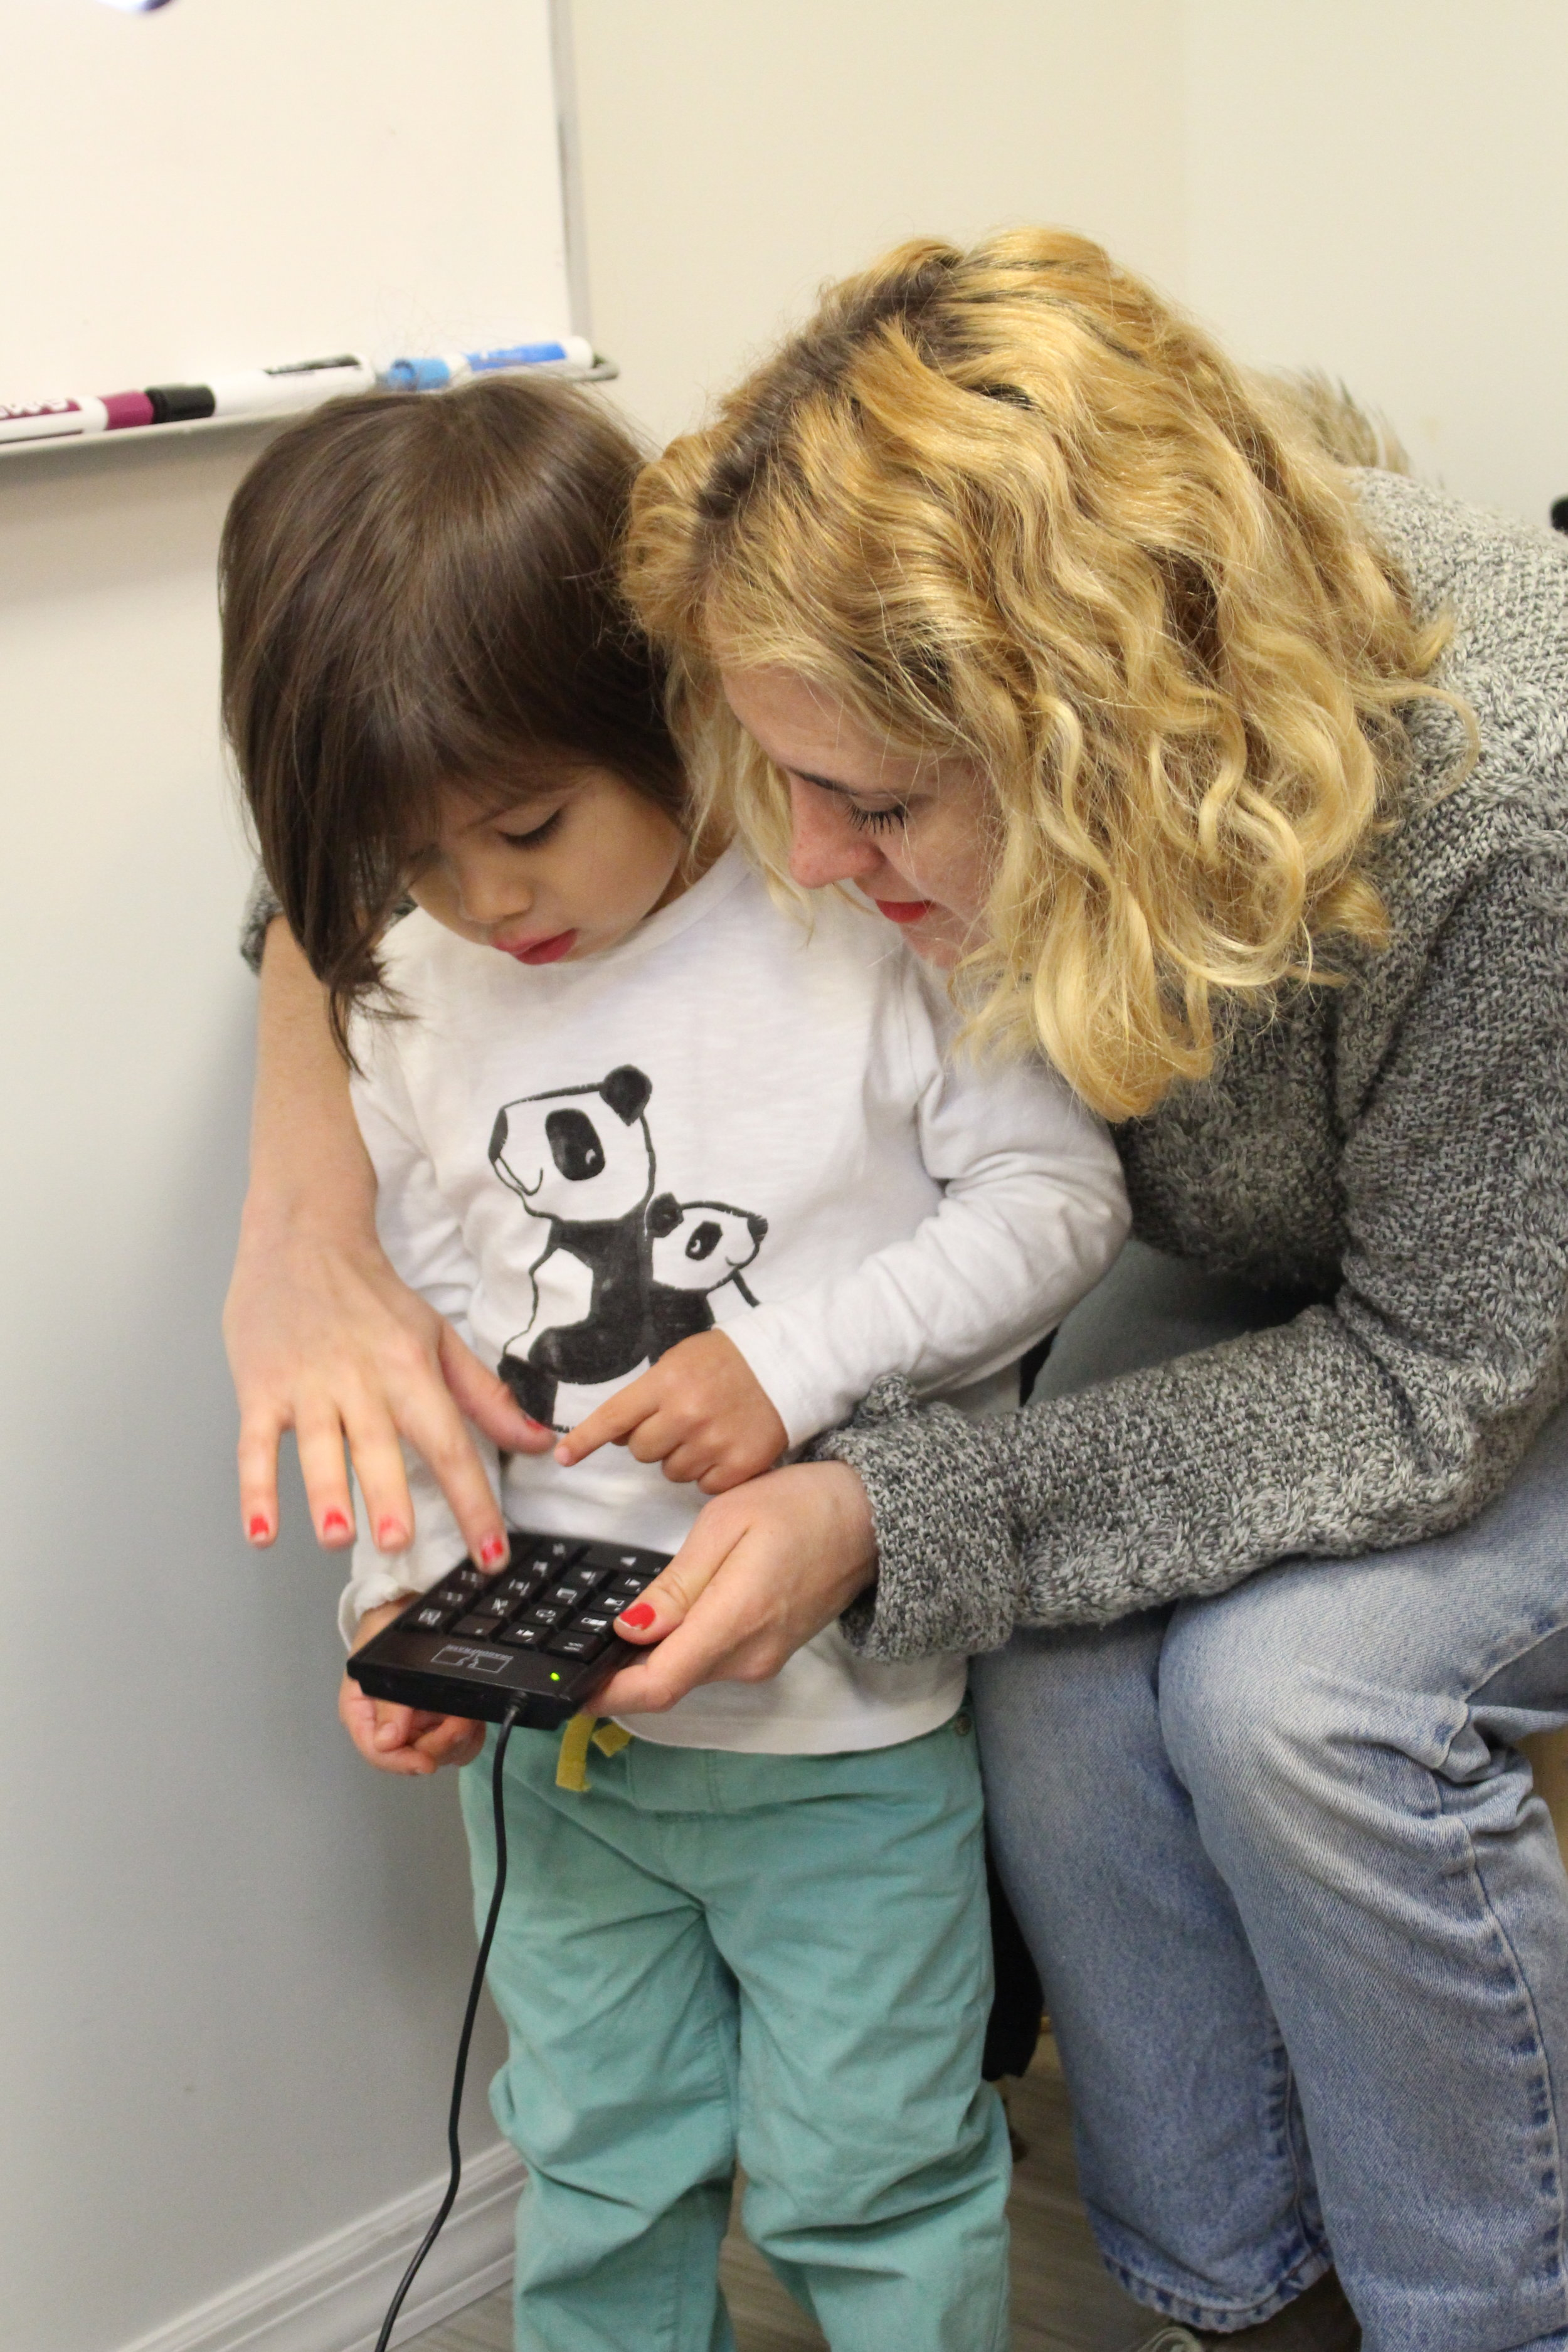 Founder Laura Bellmont works with three years old.